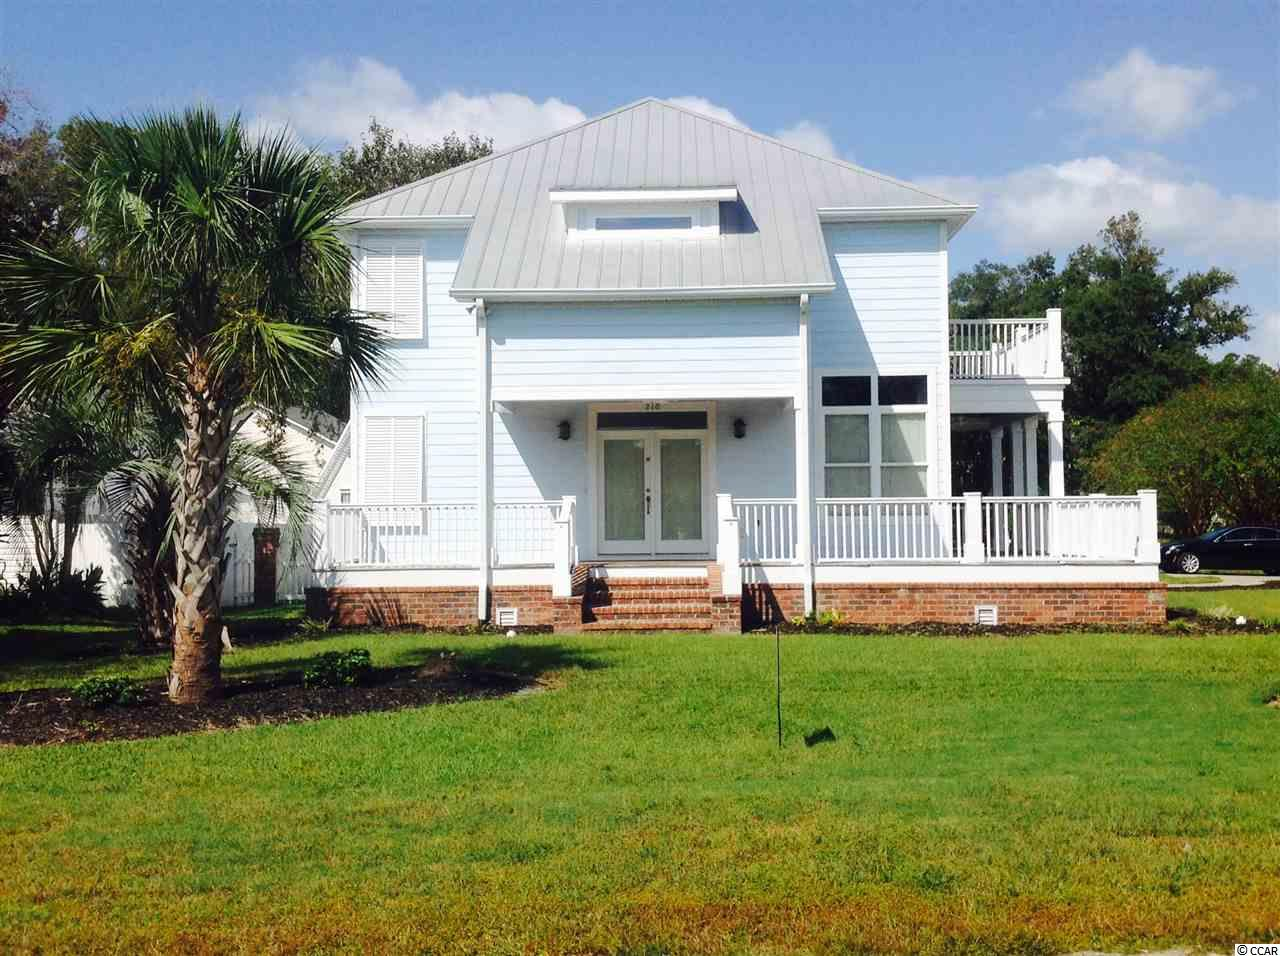 Single Family Home for Sale at 210 S MYRTLE DRIVE 210 S MYRTLE DRIVE Surfside Beach, South Carolina 29575 United States